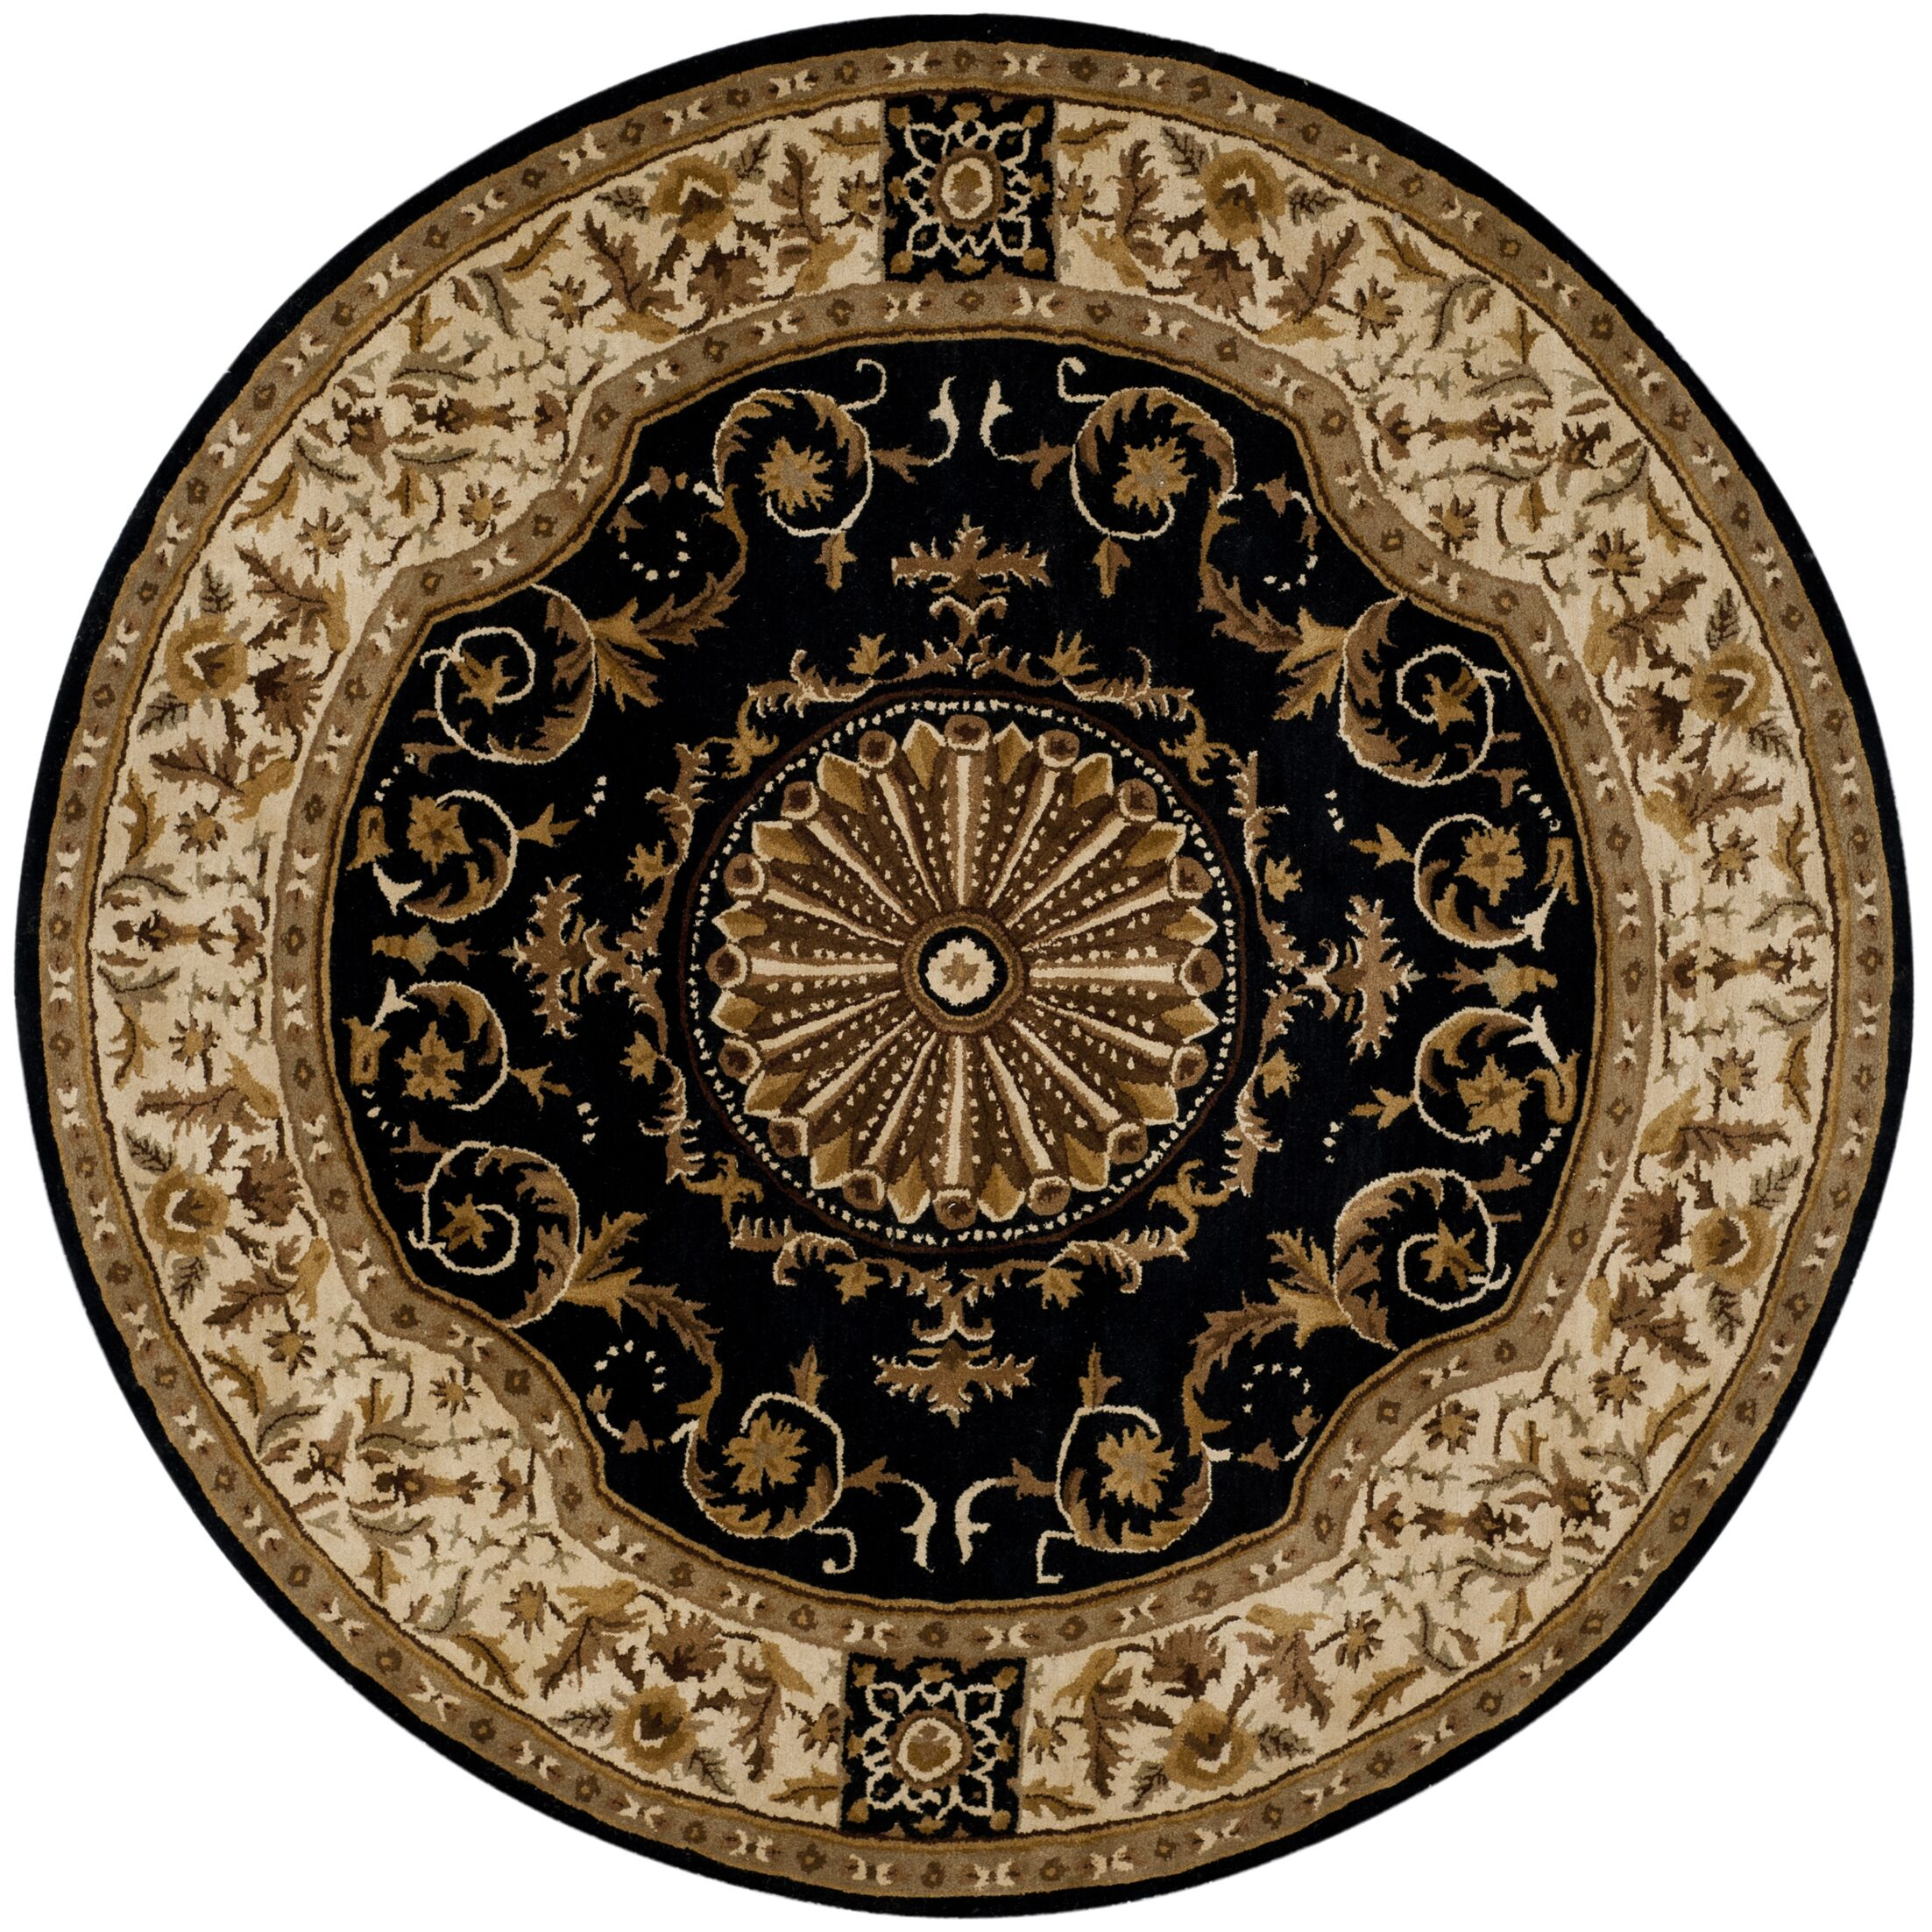 Atlasburg Hand-Tufted Wool Black Area Rug Size: Round 8'